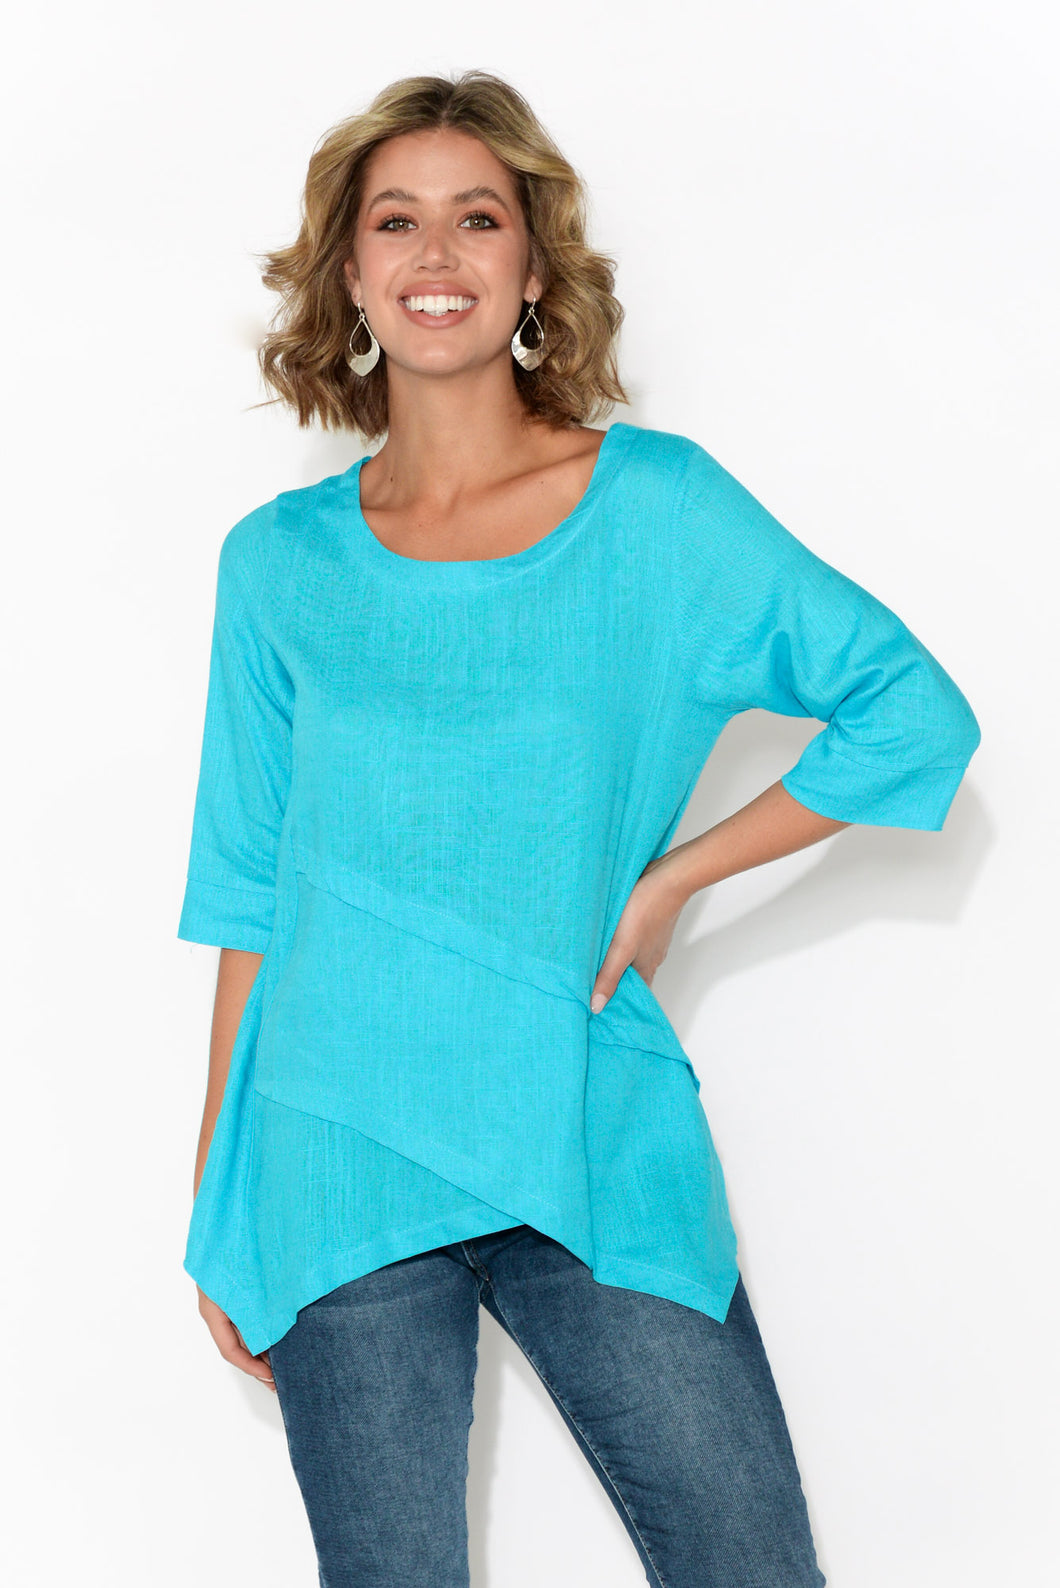 Anya Aqua Linen Cotton Top